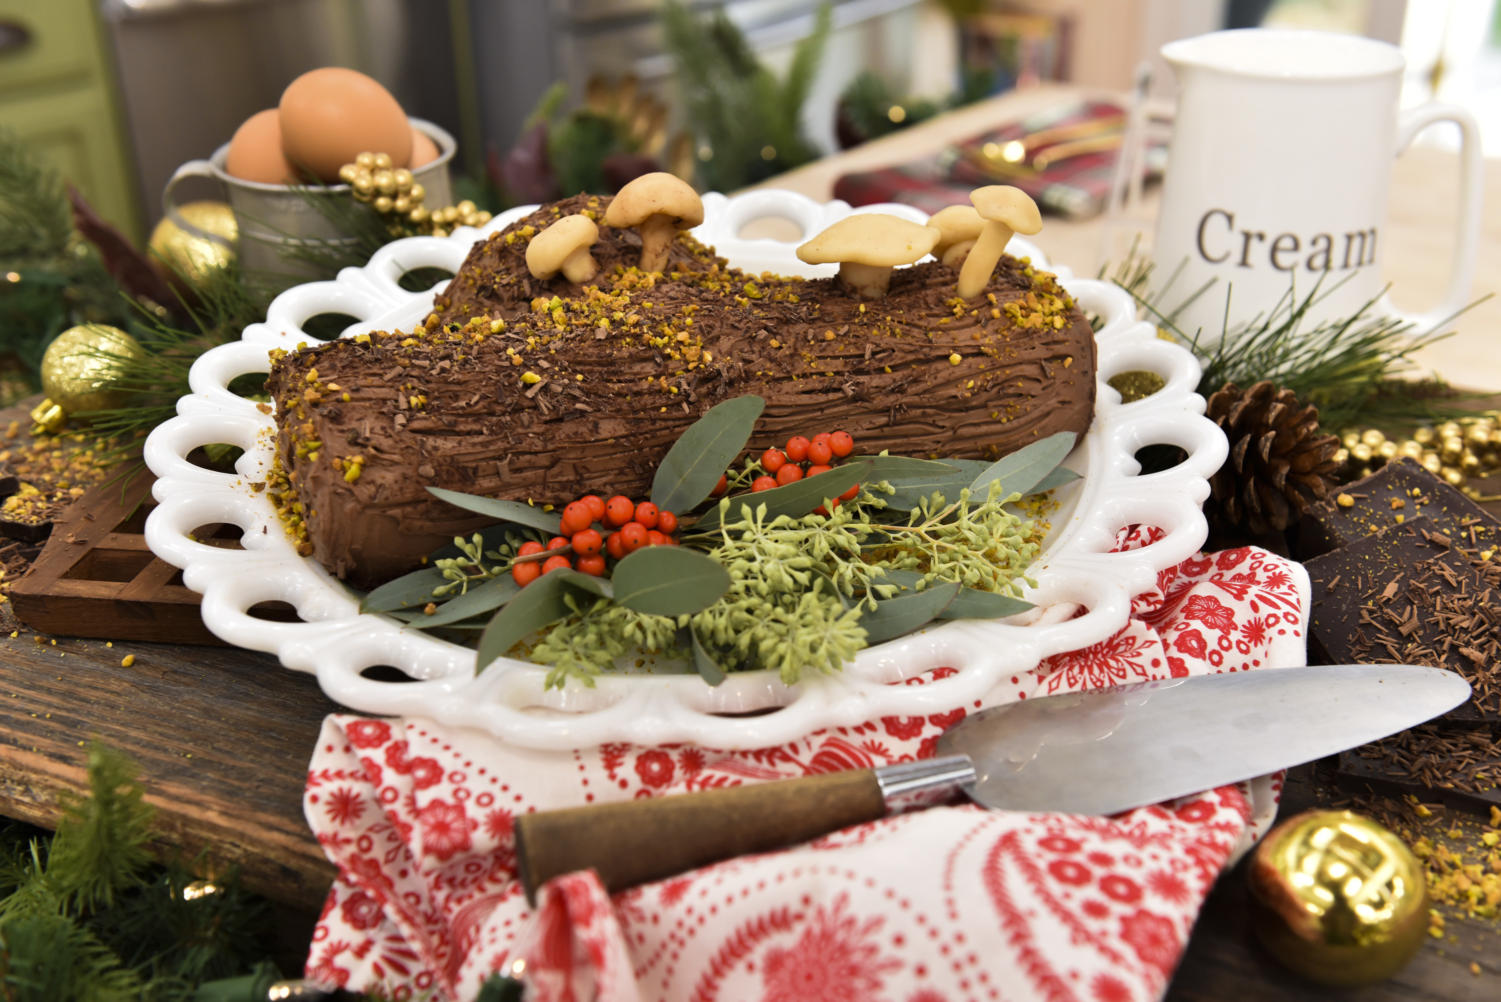 What a lovely Yule log